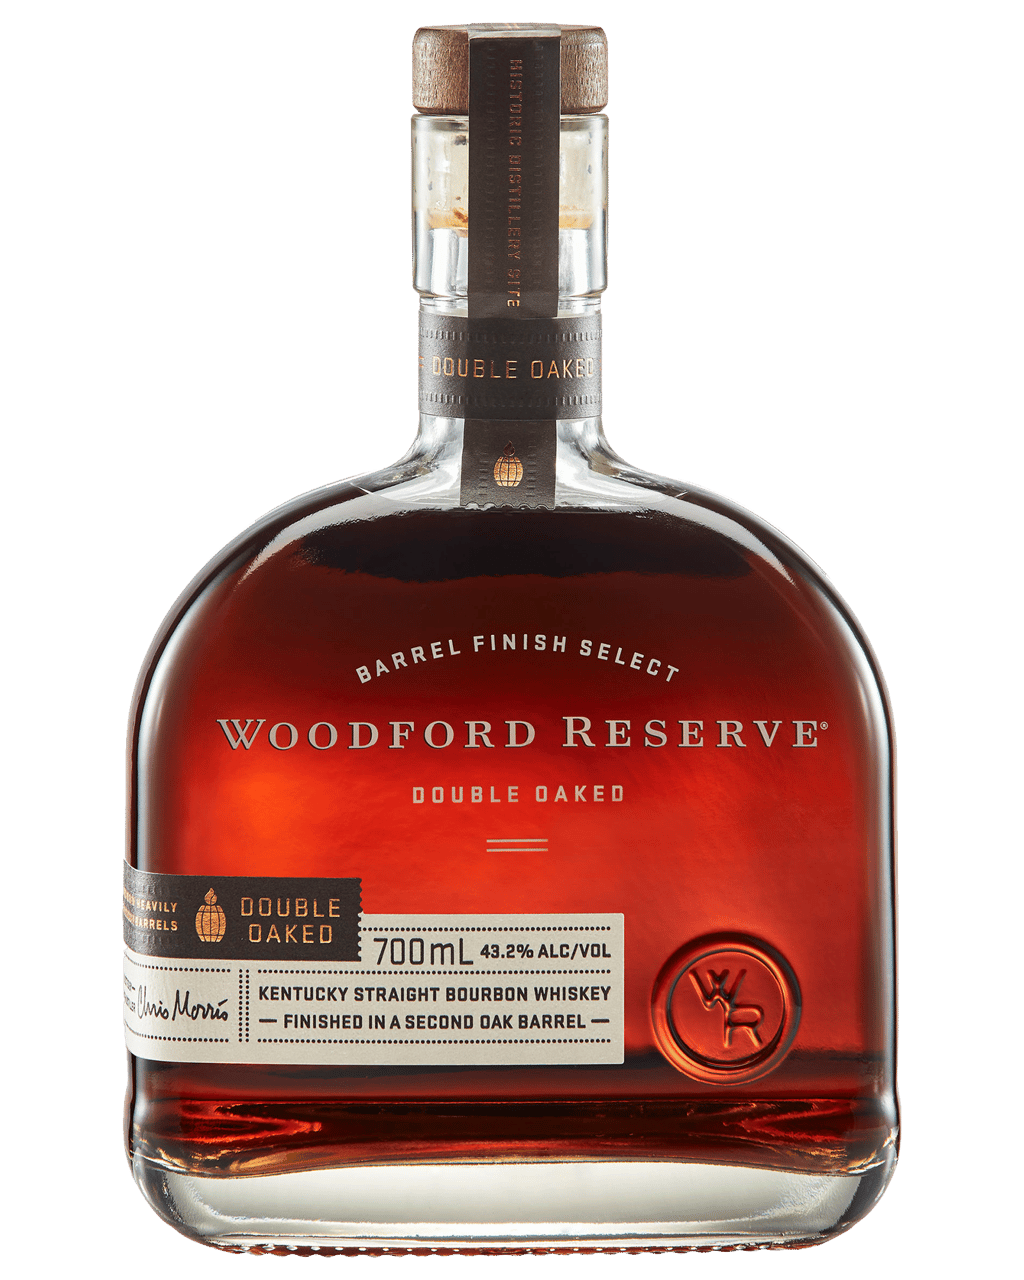 34f5f017b0e Woodford Reserve Double Oaked Bourbon 700mL